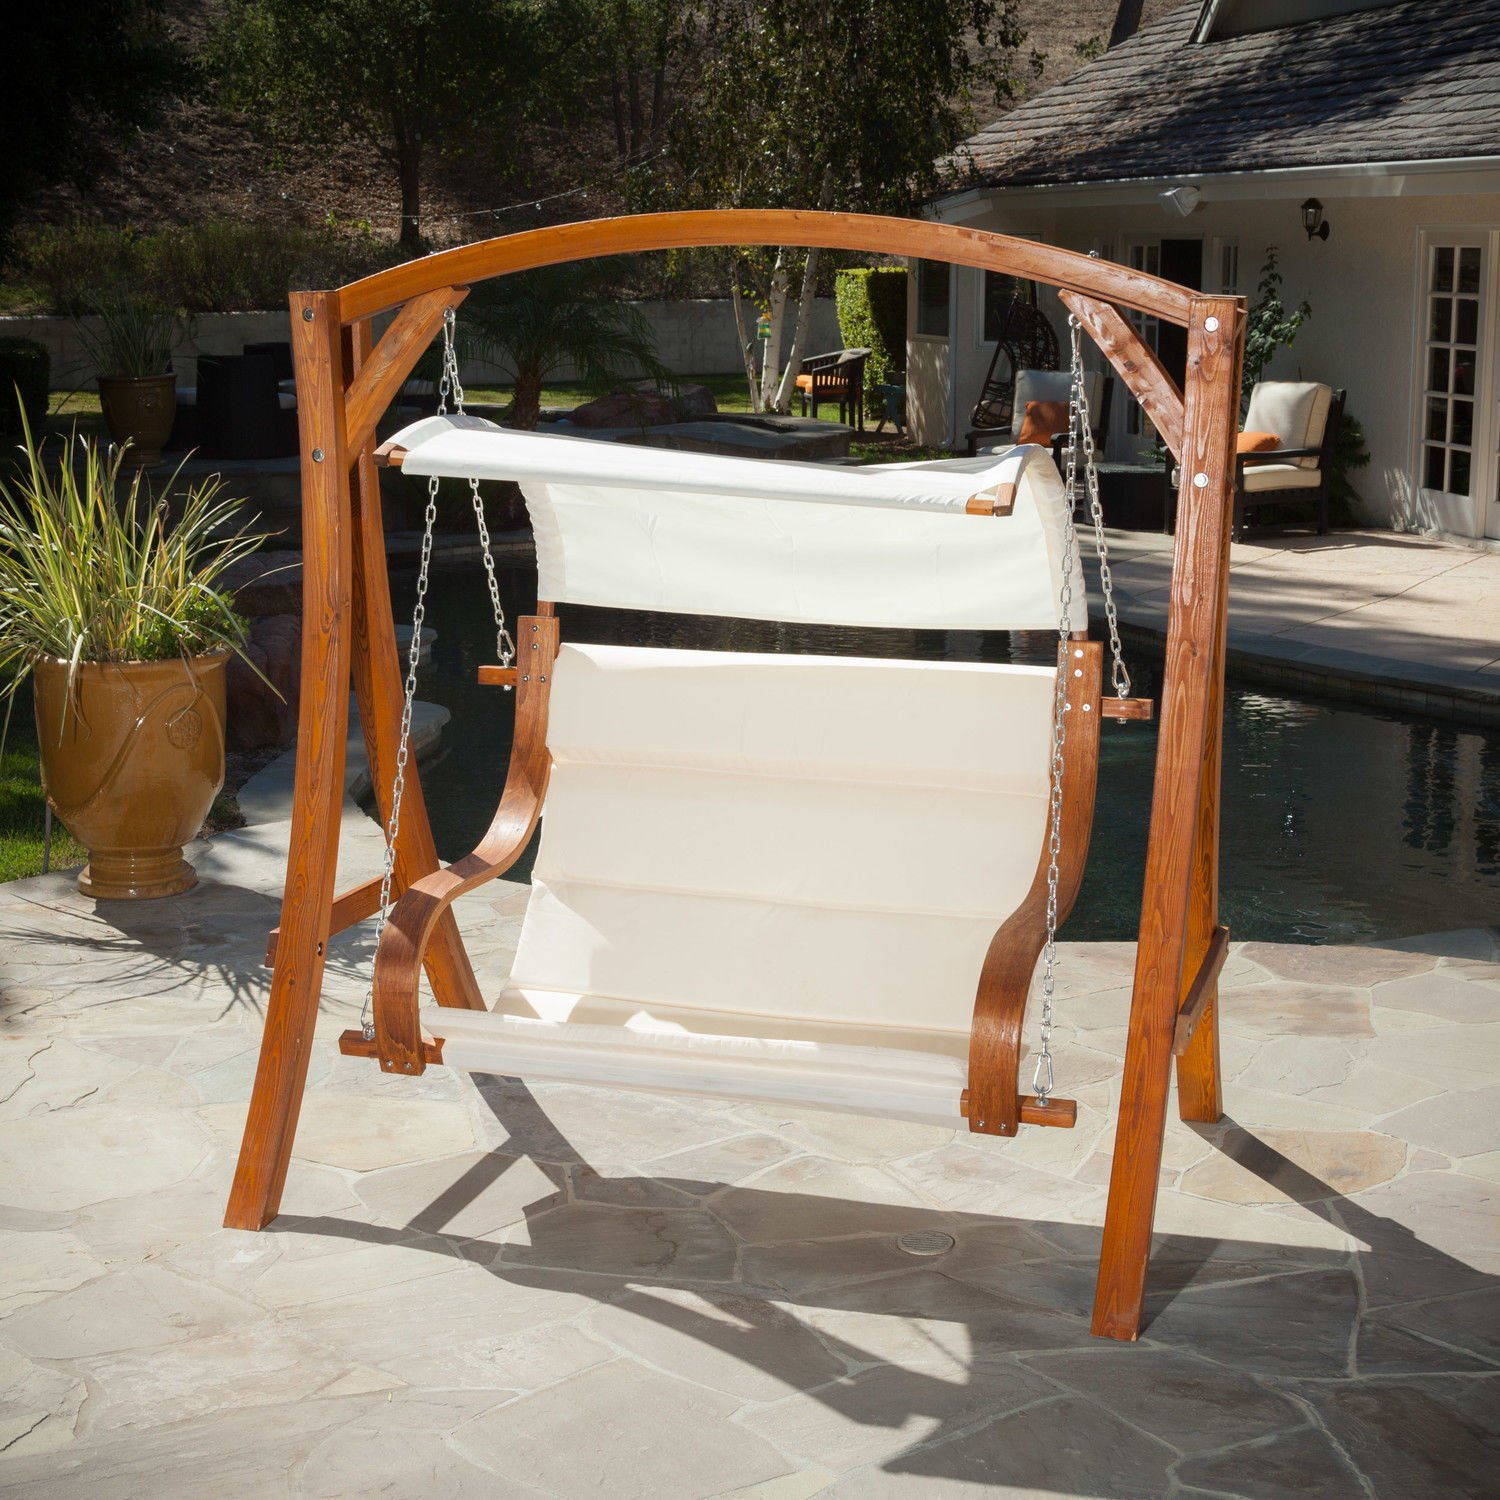 Hanging Wood Bench Love Seat Chair Swing Patio Outdoor Furniture Garden